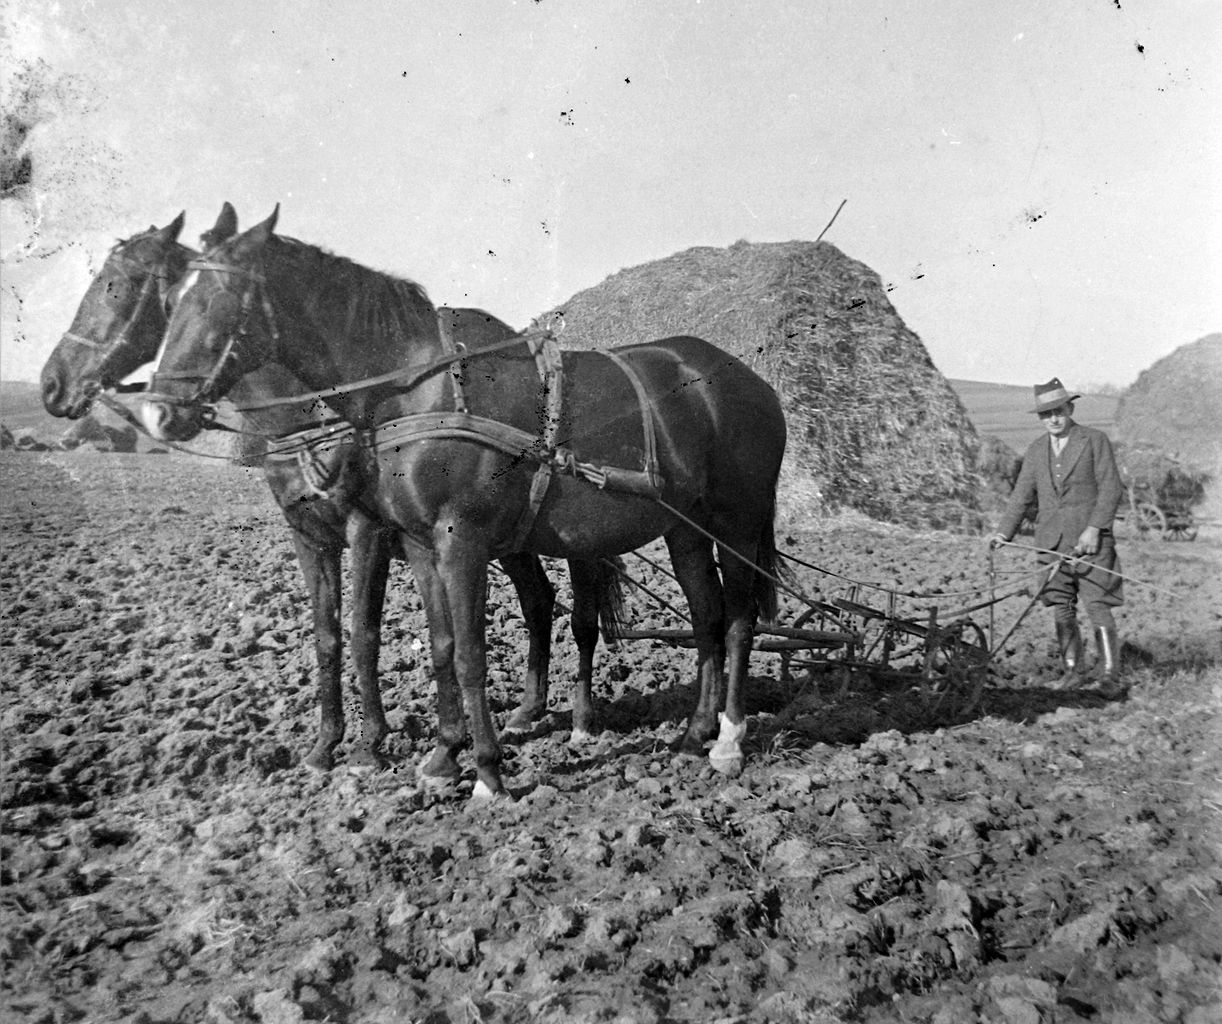 File:Agriculture, work, plowing, horse, plow Fortepan ... - photo#17